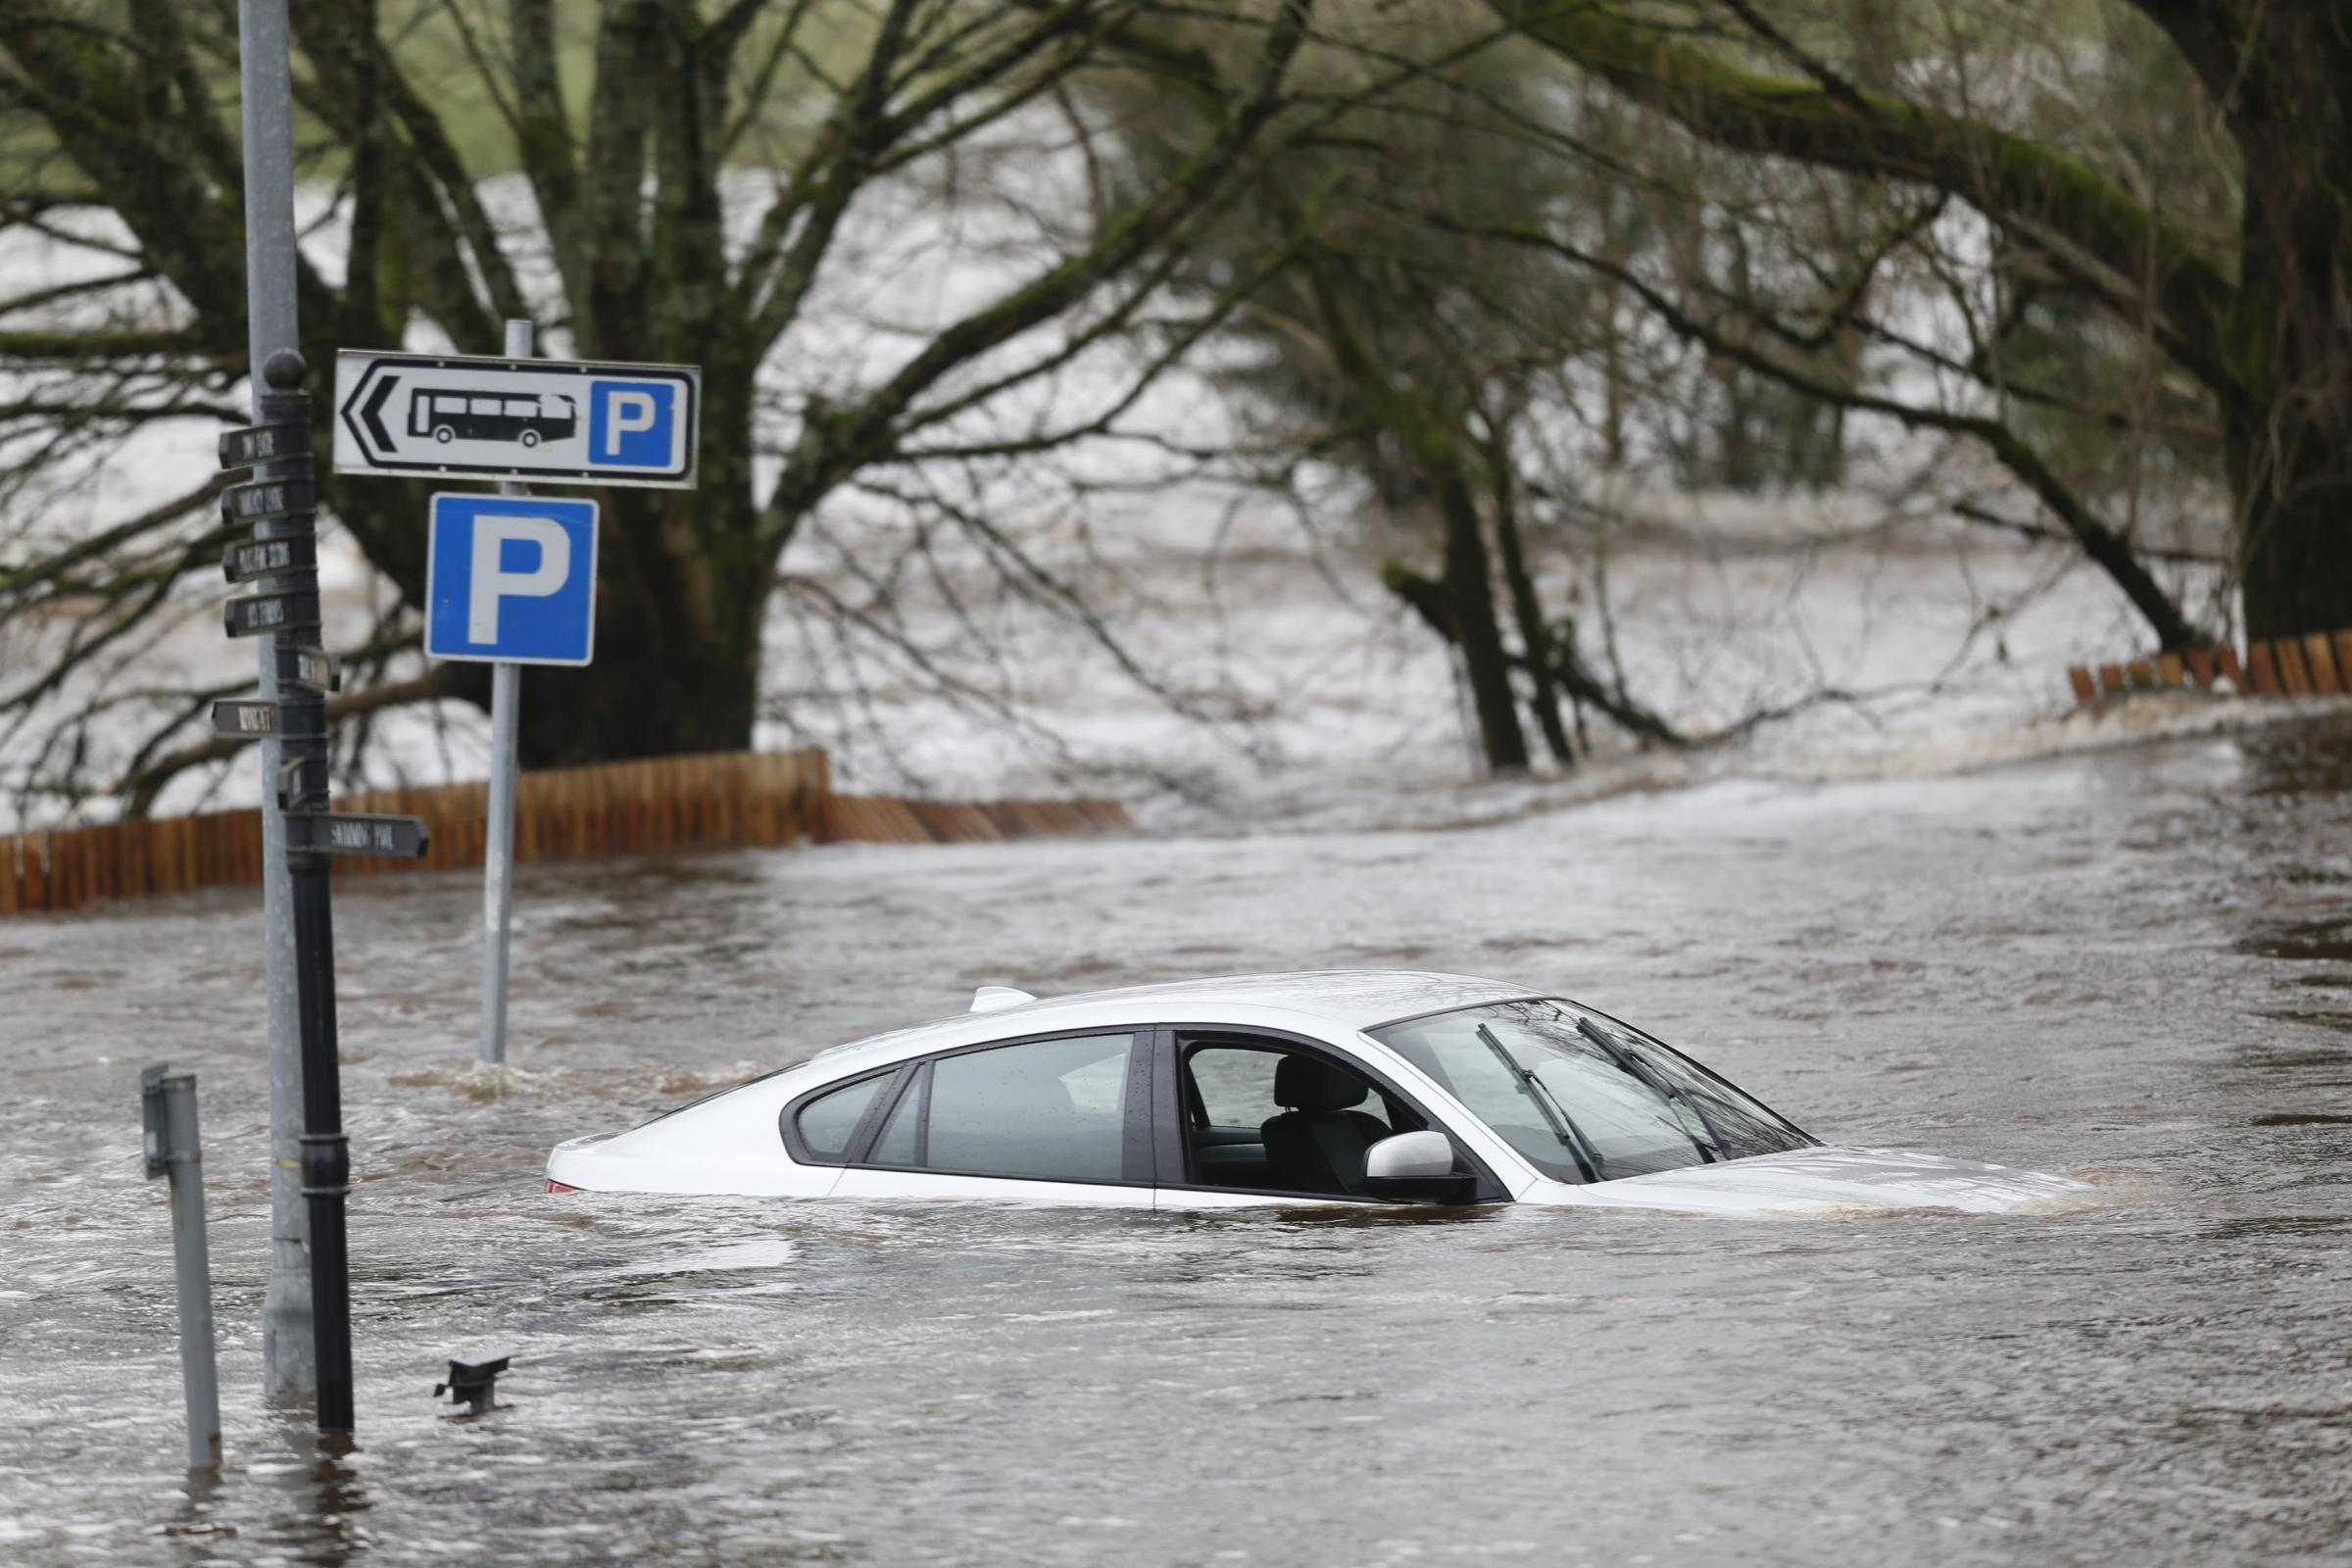 Flooding and storm surges threat for Scotland's cities revealed in new report